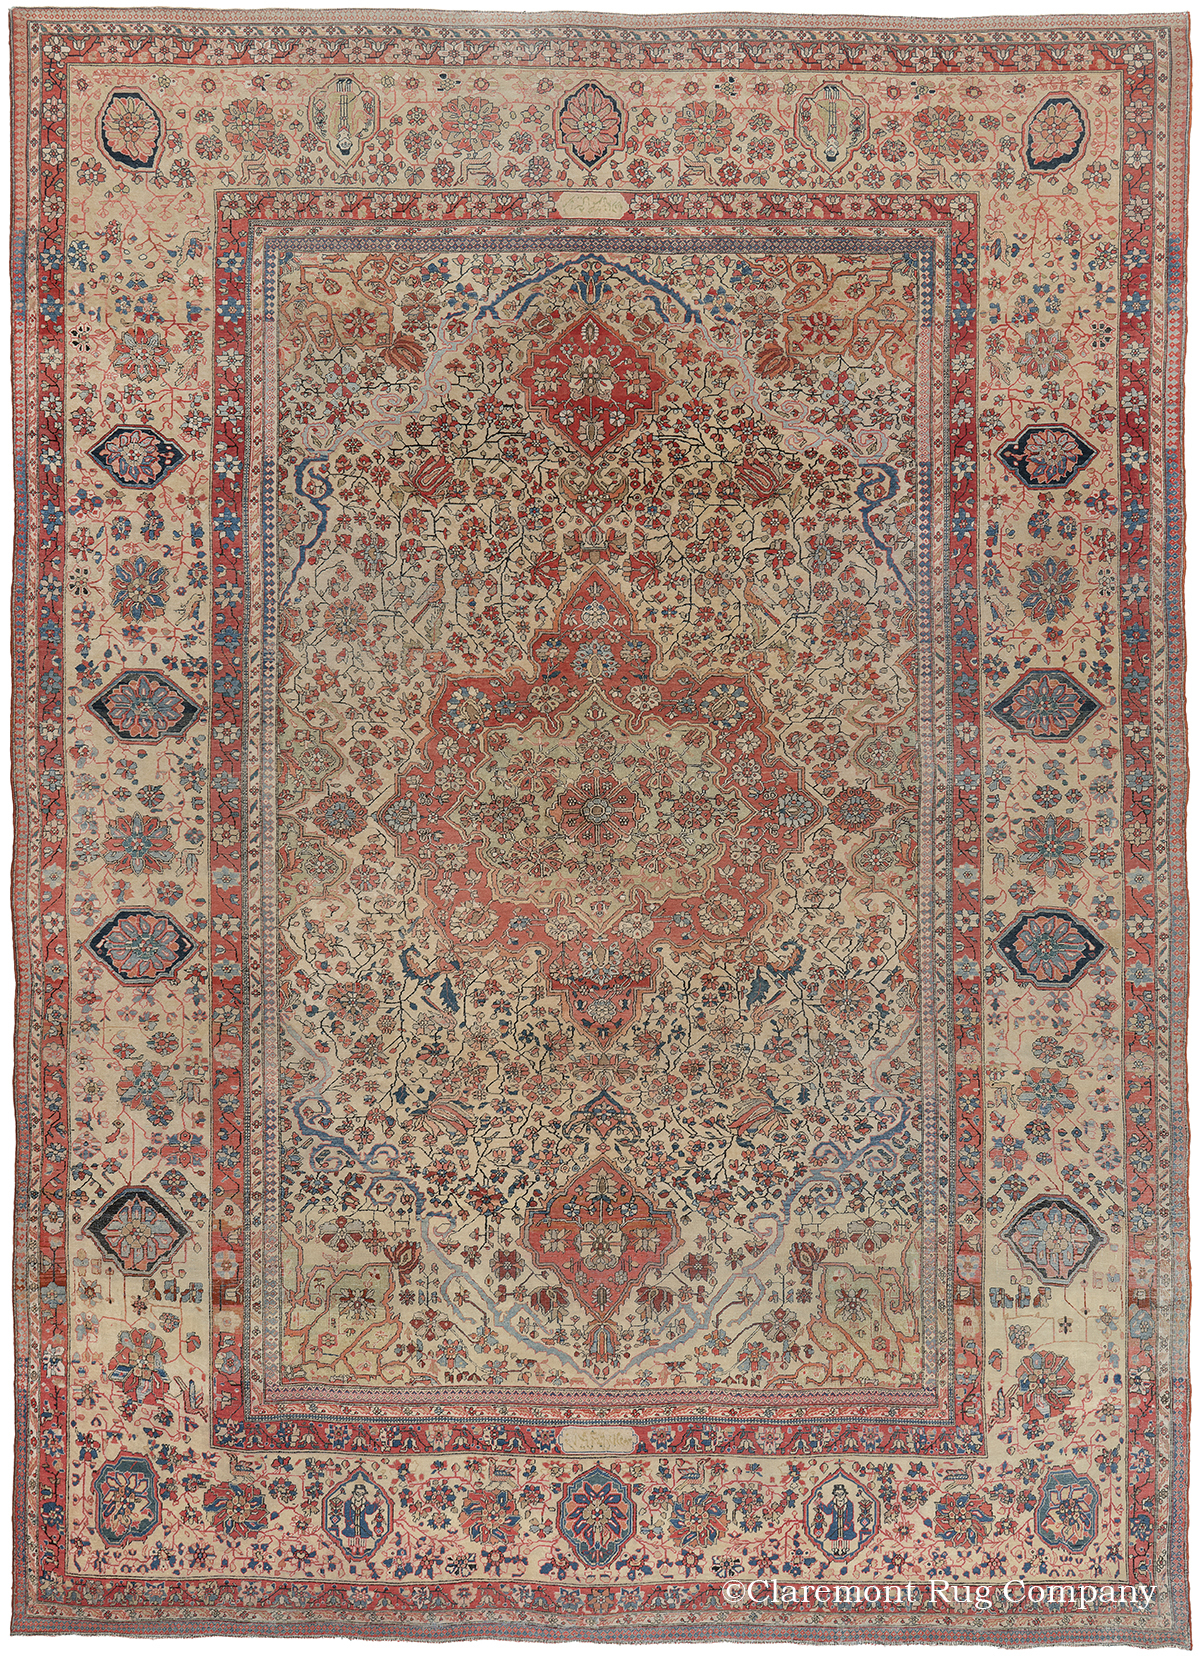 claremont rug company names 50 best of the best antique oriental rugs sold in 2016 with online. Black Bedroom Furniture Sets. Home Design Ideas